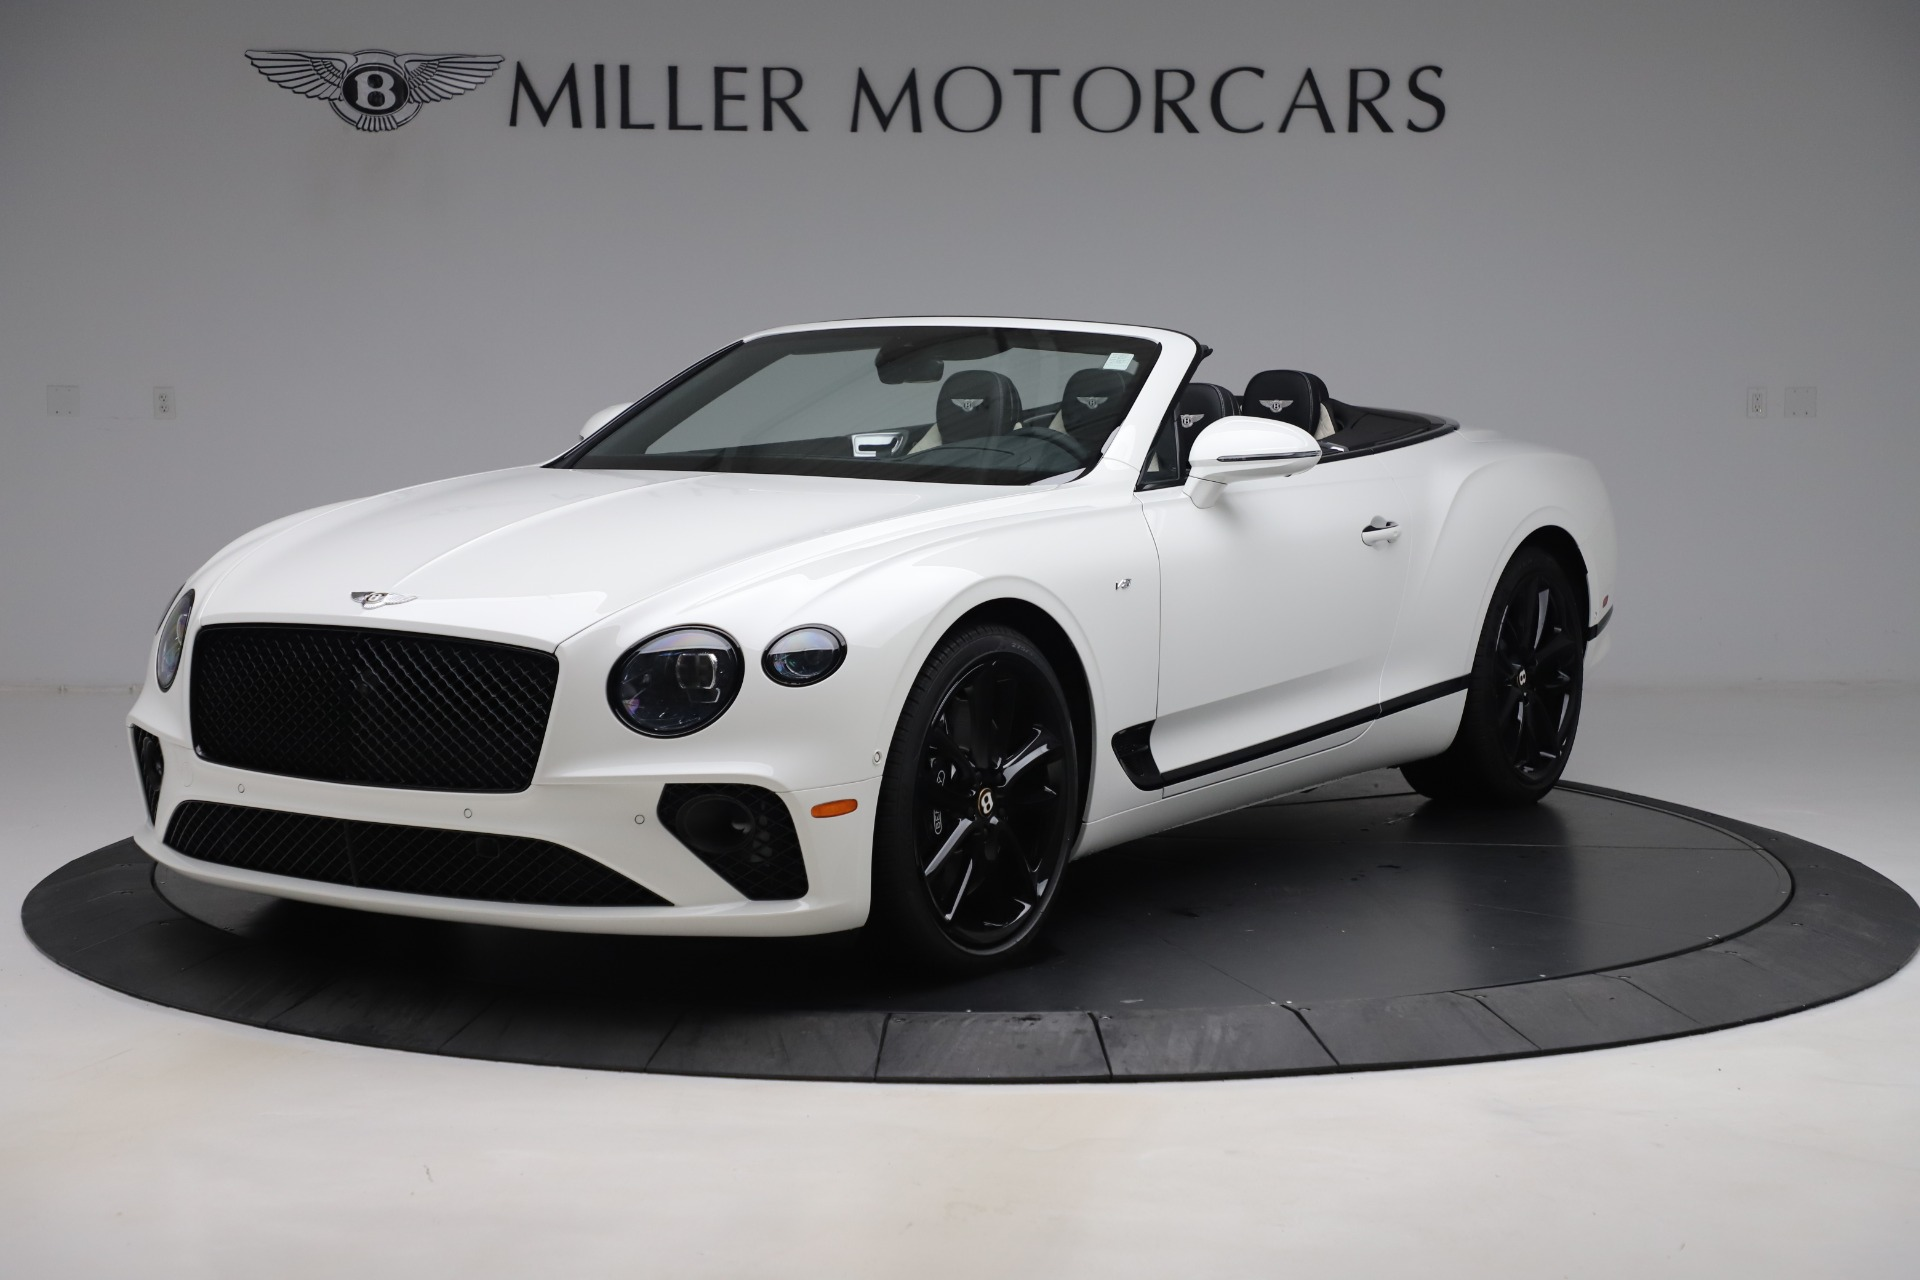 Used 2020 Bentley Continental GTC V8 for sale $277,915 at Rolls-Royce Motor Cars Greenwich in Greenwich CT 06830 1